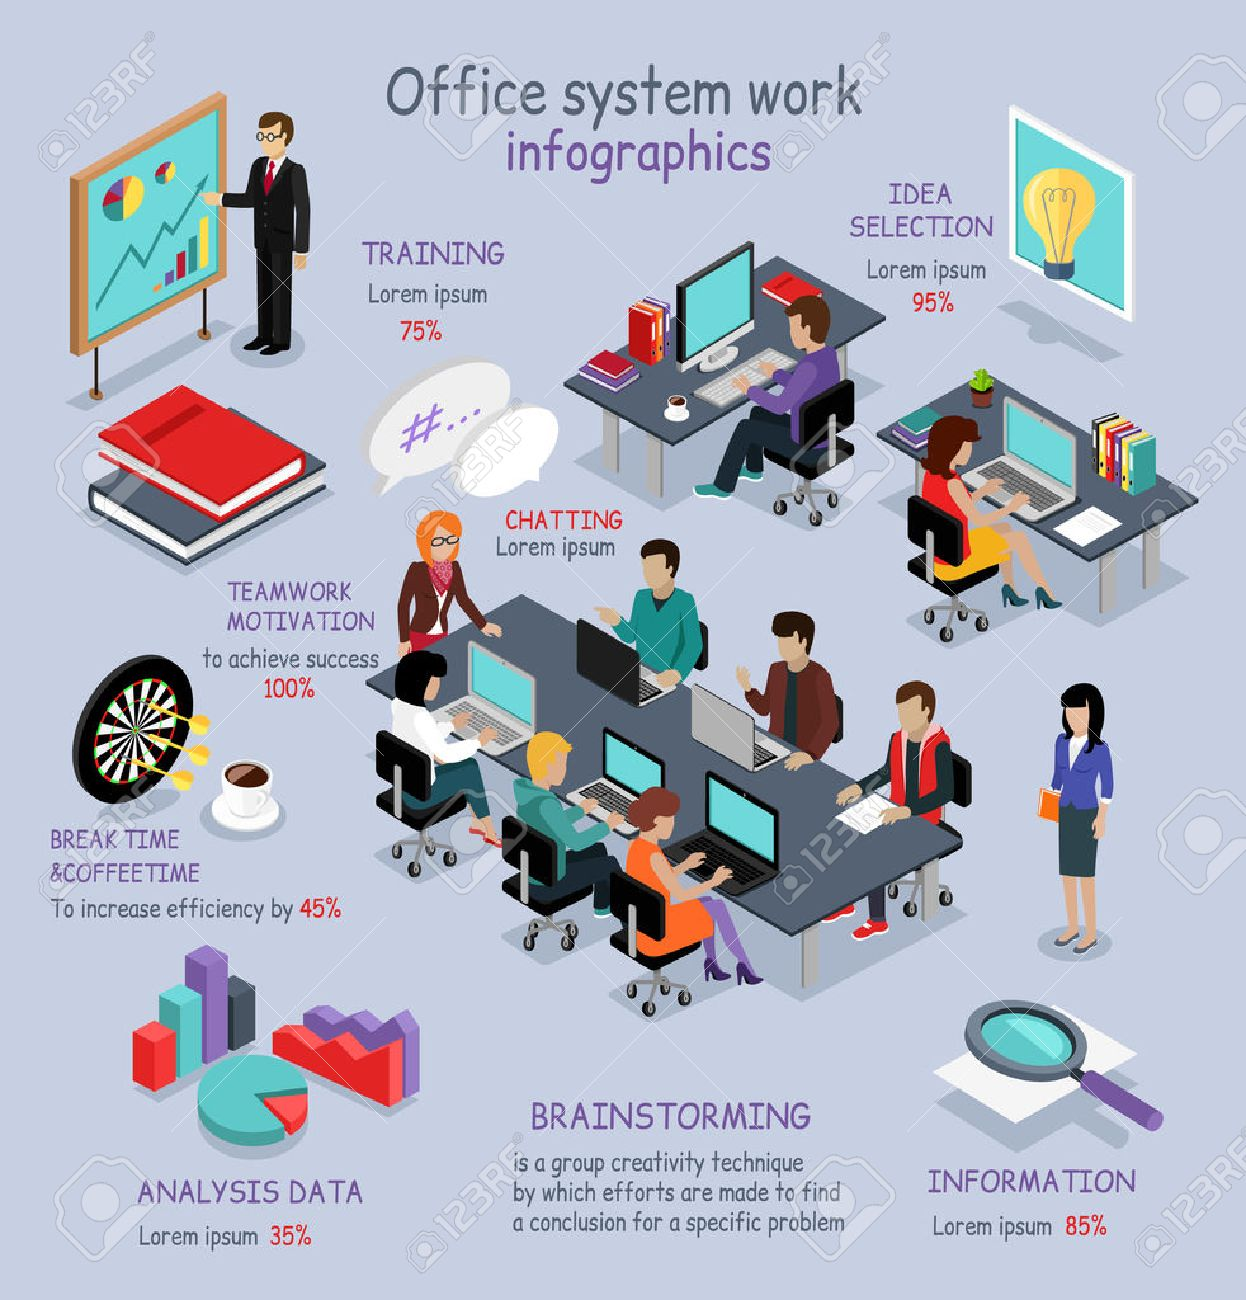 Isometric office system work infographic. 3D office interior, office desk, business and office people, office room, analysis data, brainstorming teamwork and training, 3D selection idea, break time - 51810369